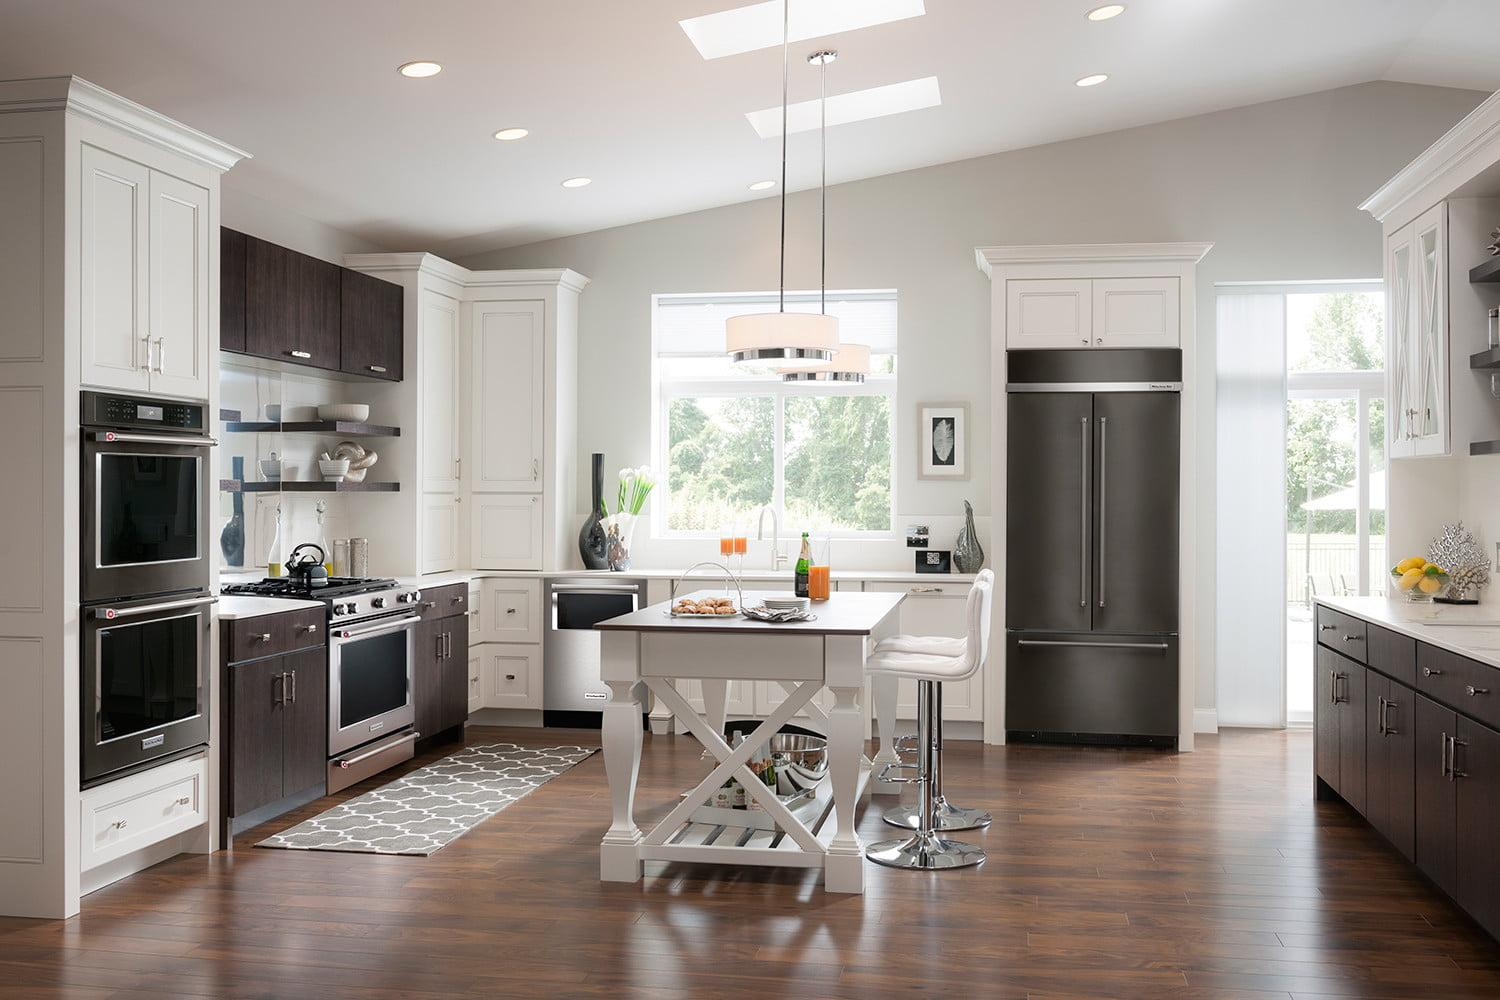 Remodeling Tips Buying Multiple Appliances From Different Brands Happy S Appliances